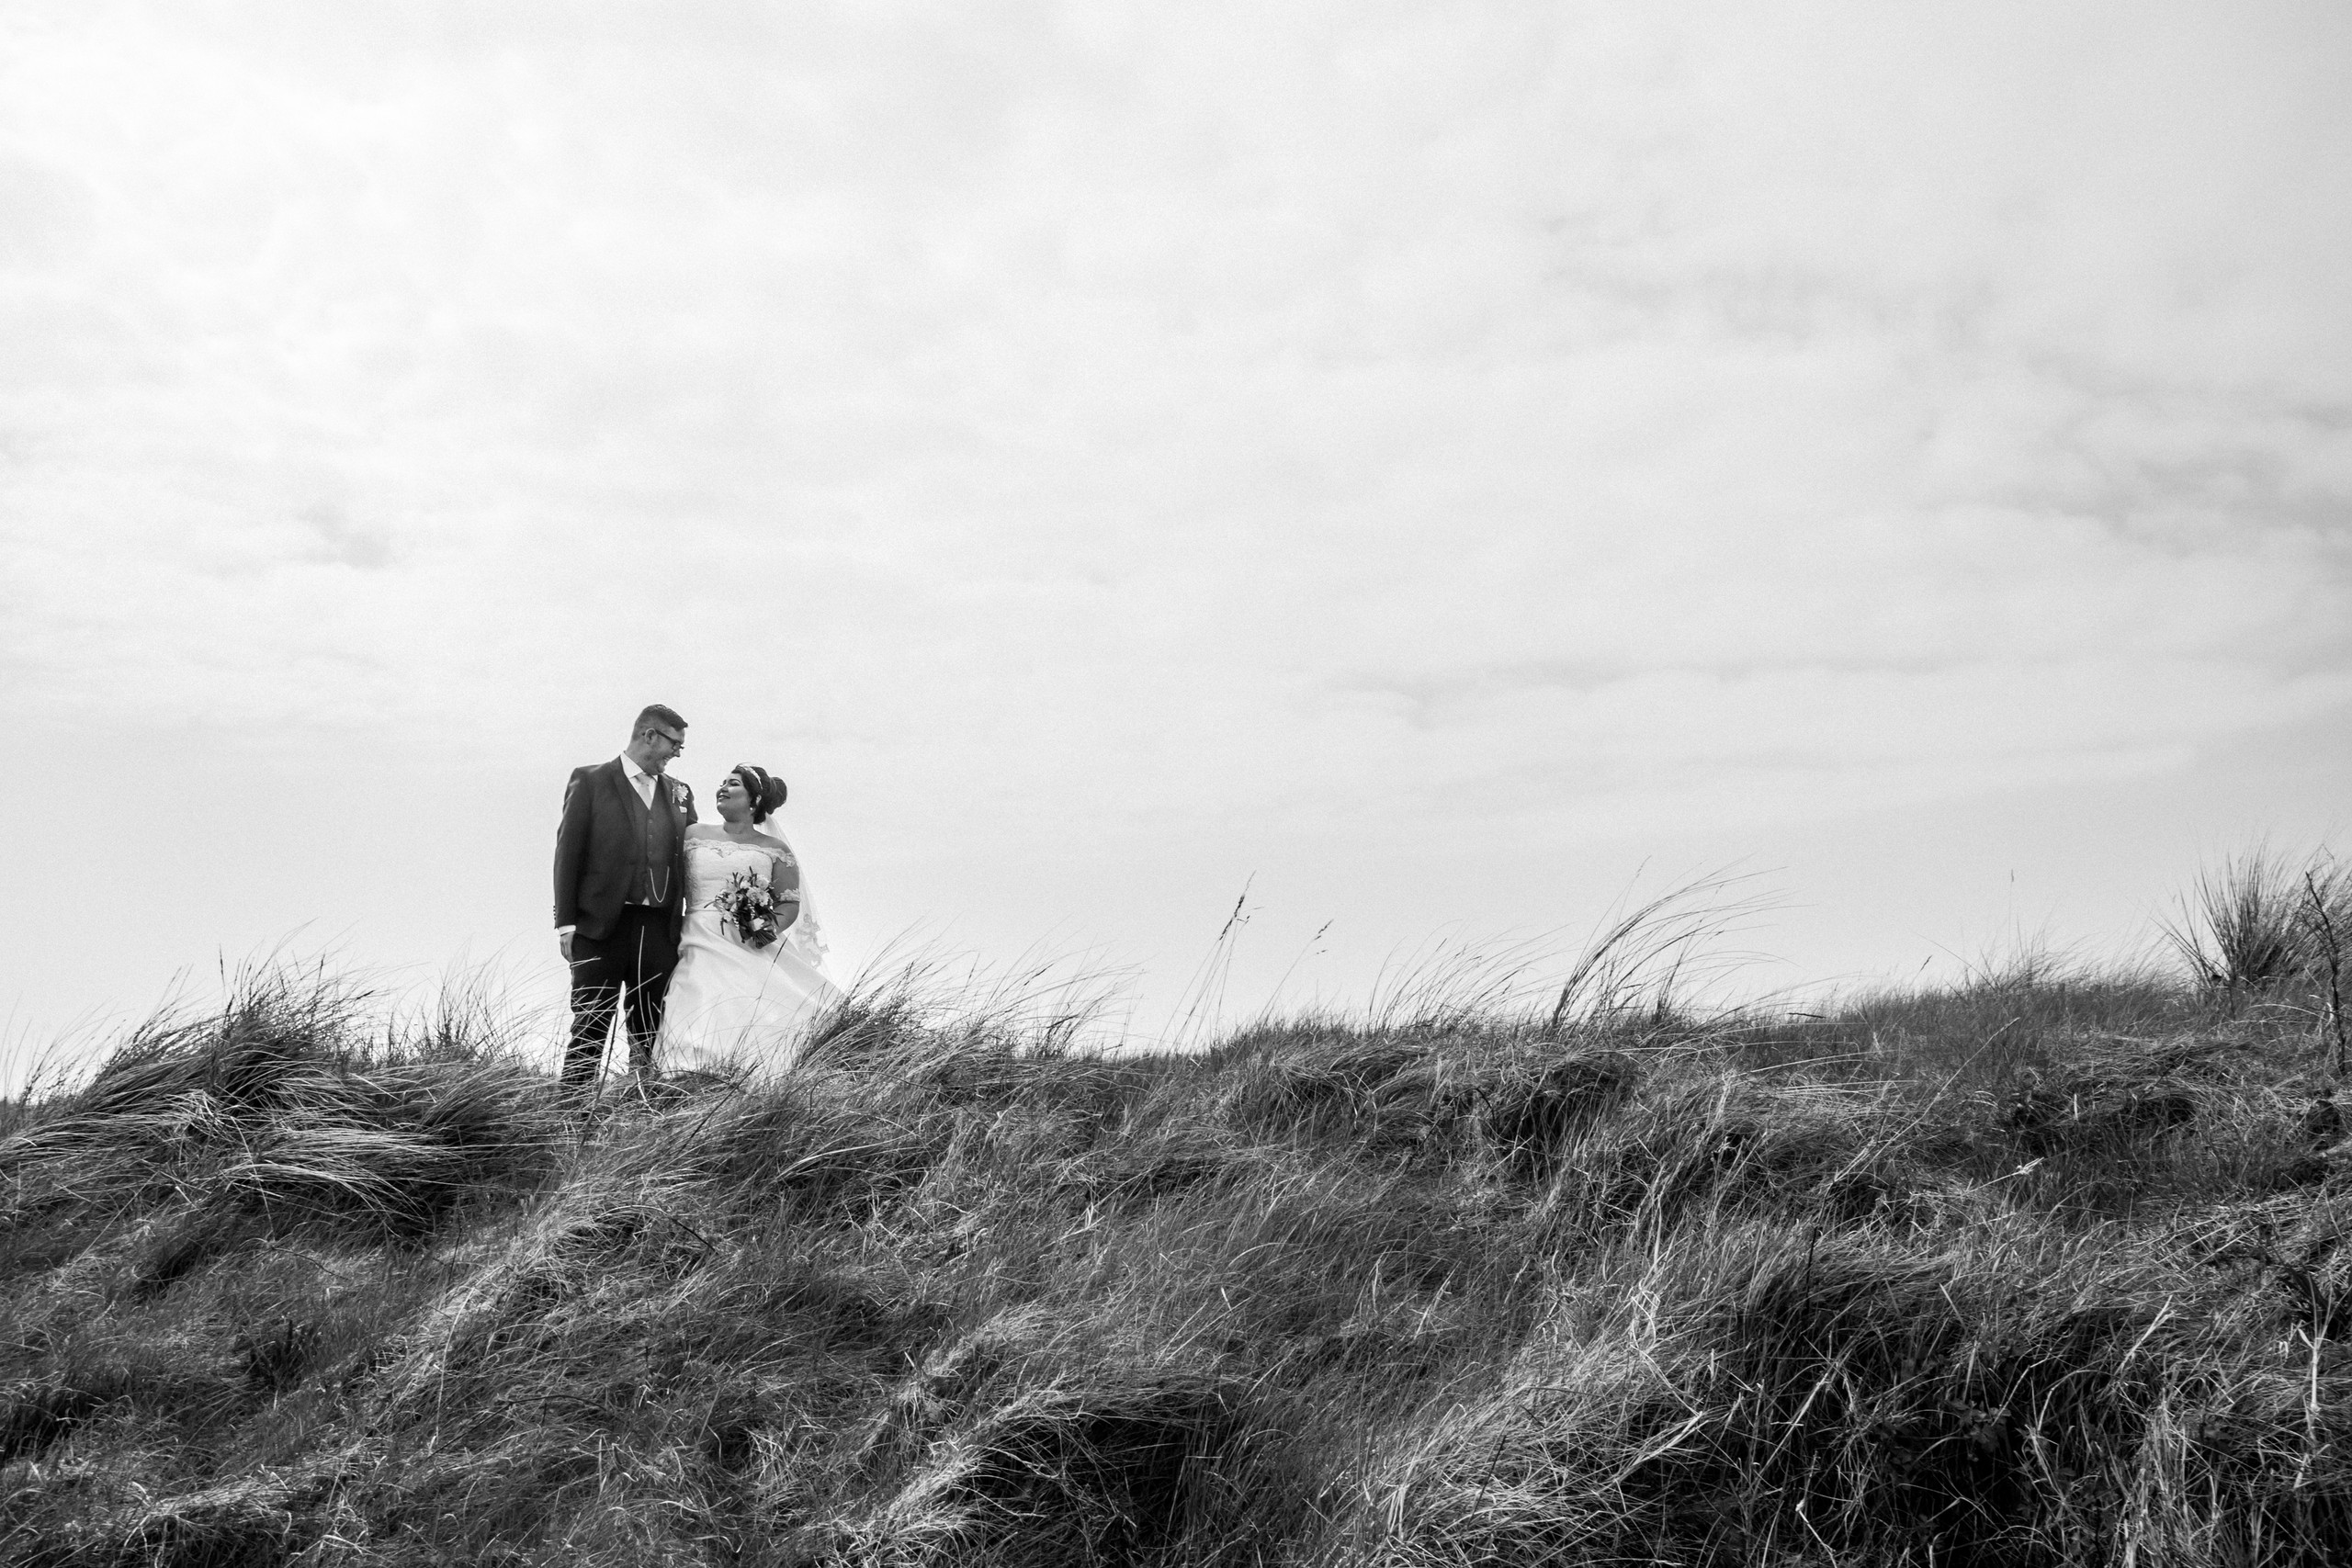 Wedding Photography of Bride and Groom at Burry Port, Llanelli, Carmarthenshire